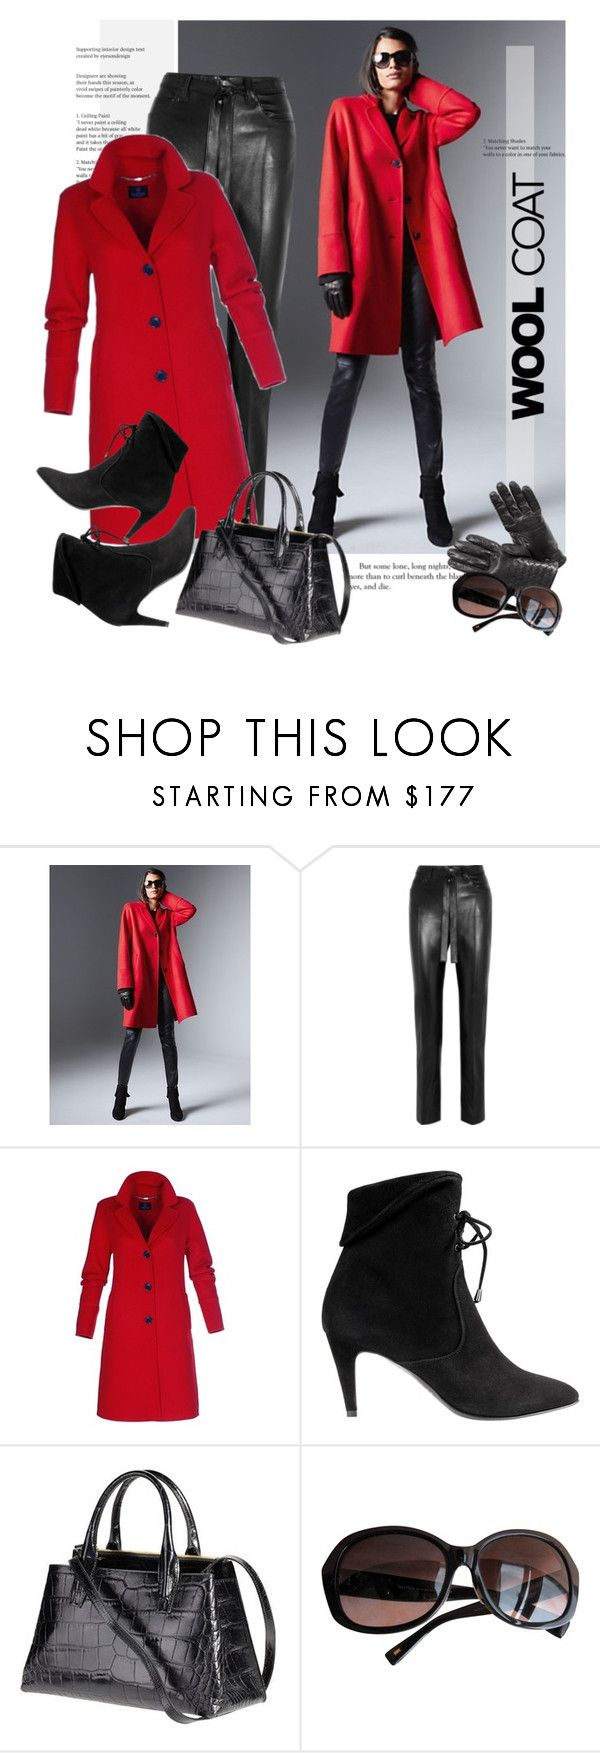 """""""Red Coat"""" by sella103 ❤ liked on Polyvore featuring Topshop Unique, MaxMara and coat"""